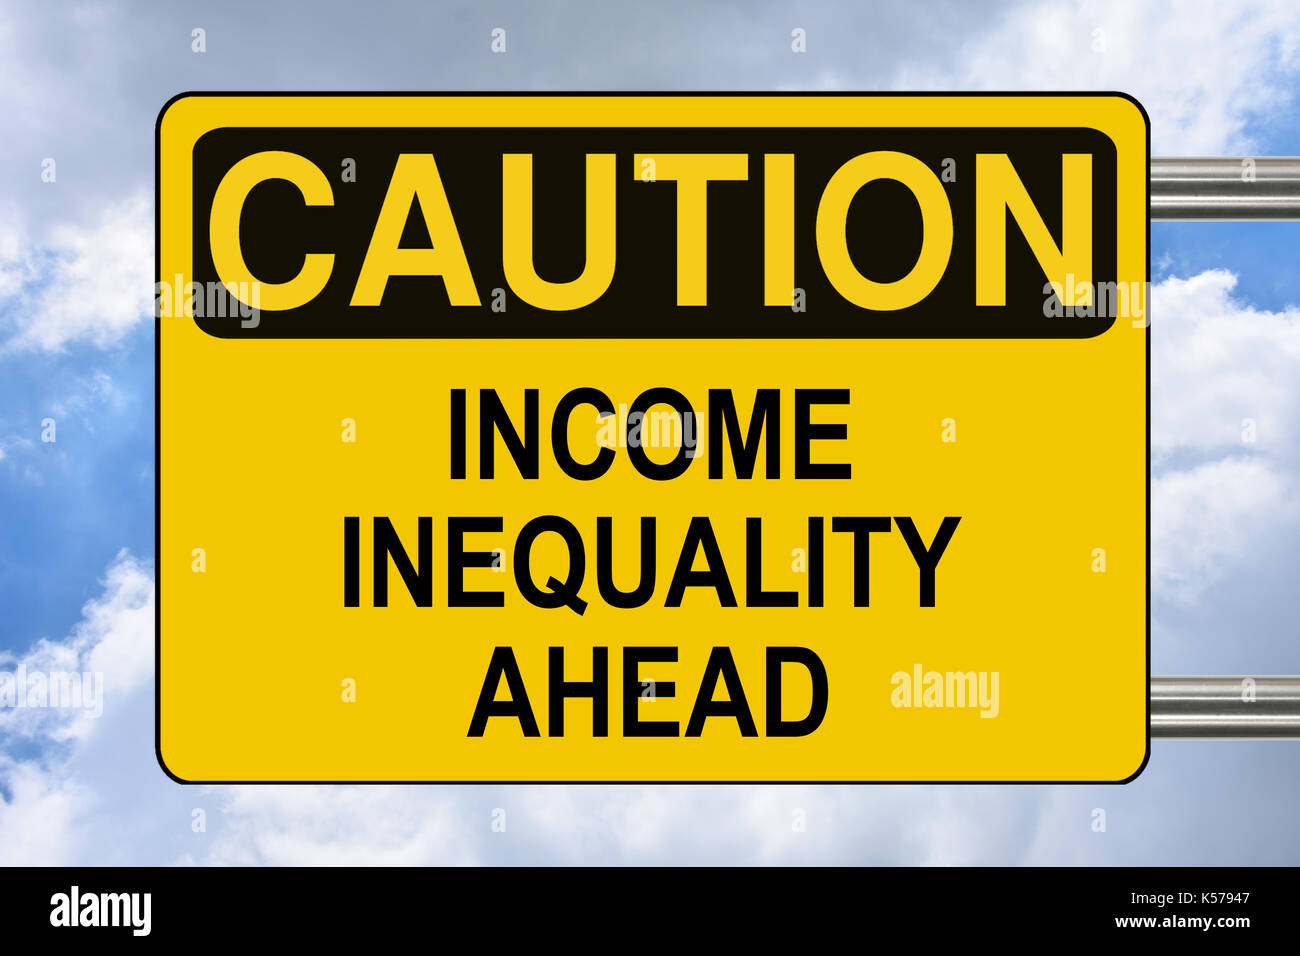 Income inequality Ahead, yellow warning road sign. - Stock Image